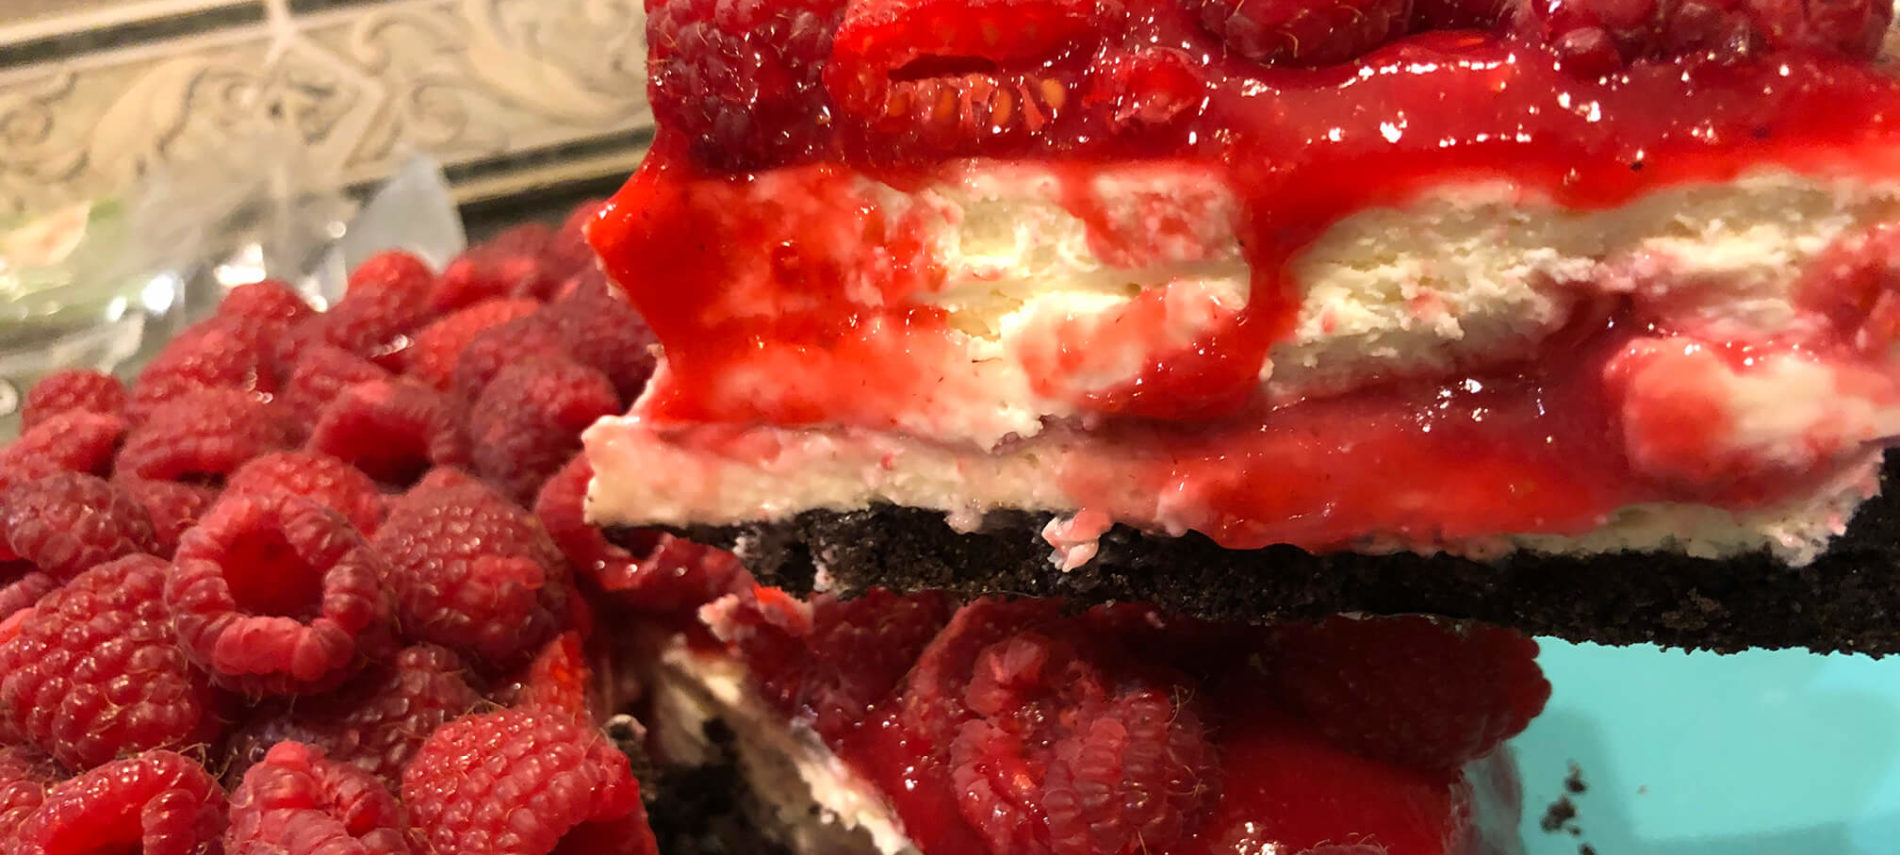 Creamy White Cheesecake with a red raspberry sauce topped with fresh strawberries, under a dark brown chocolate crust